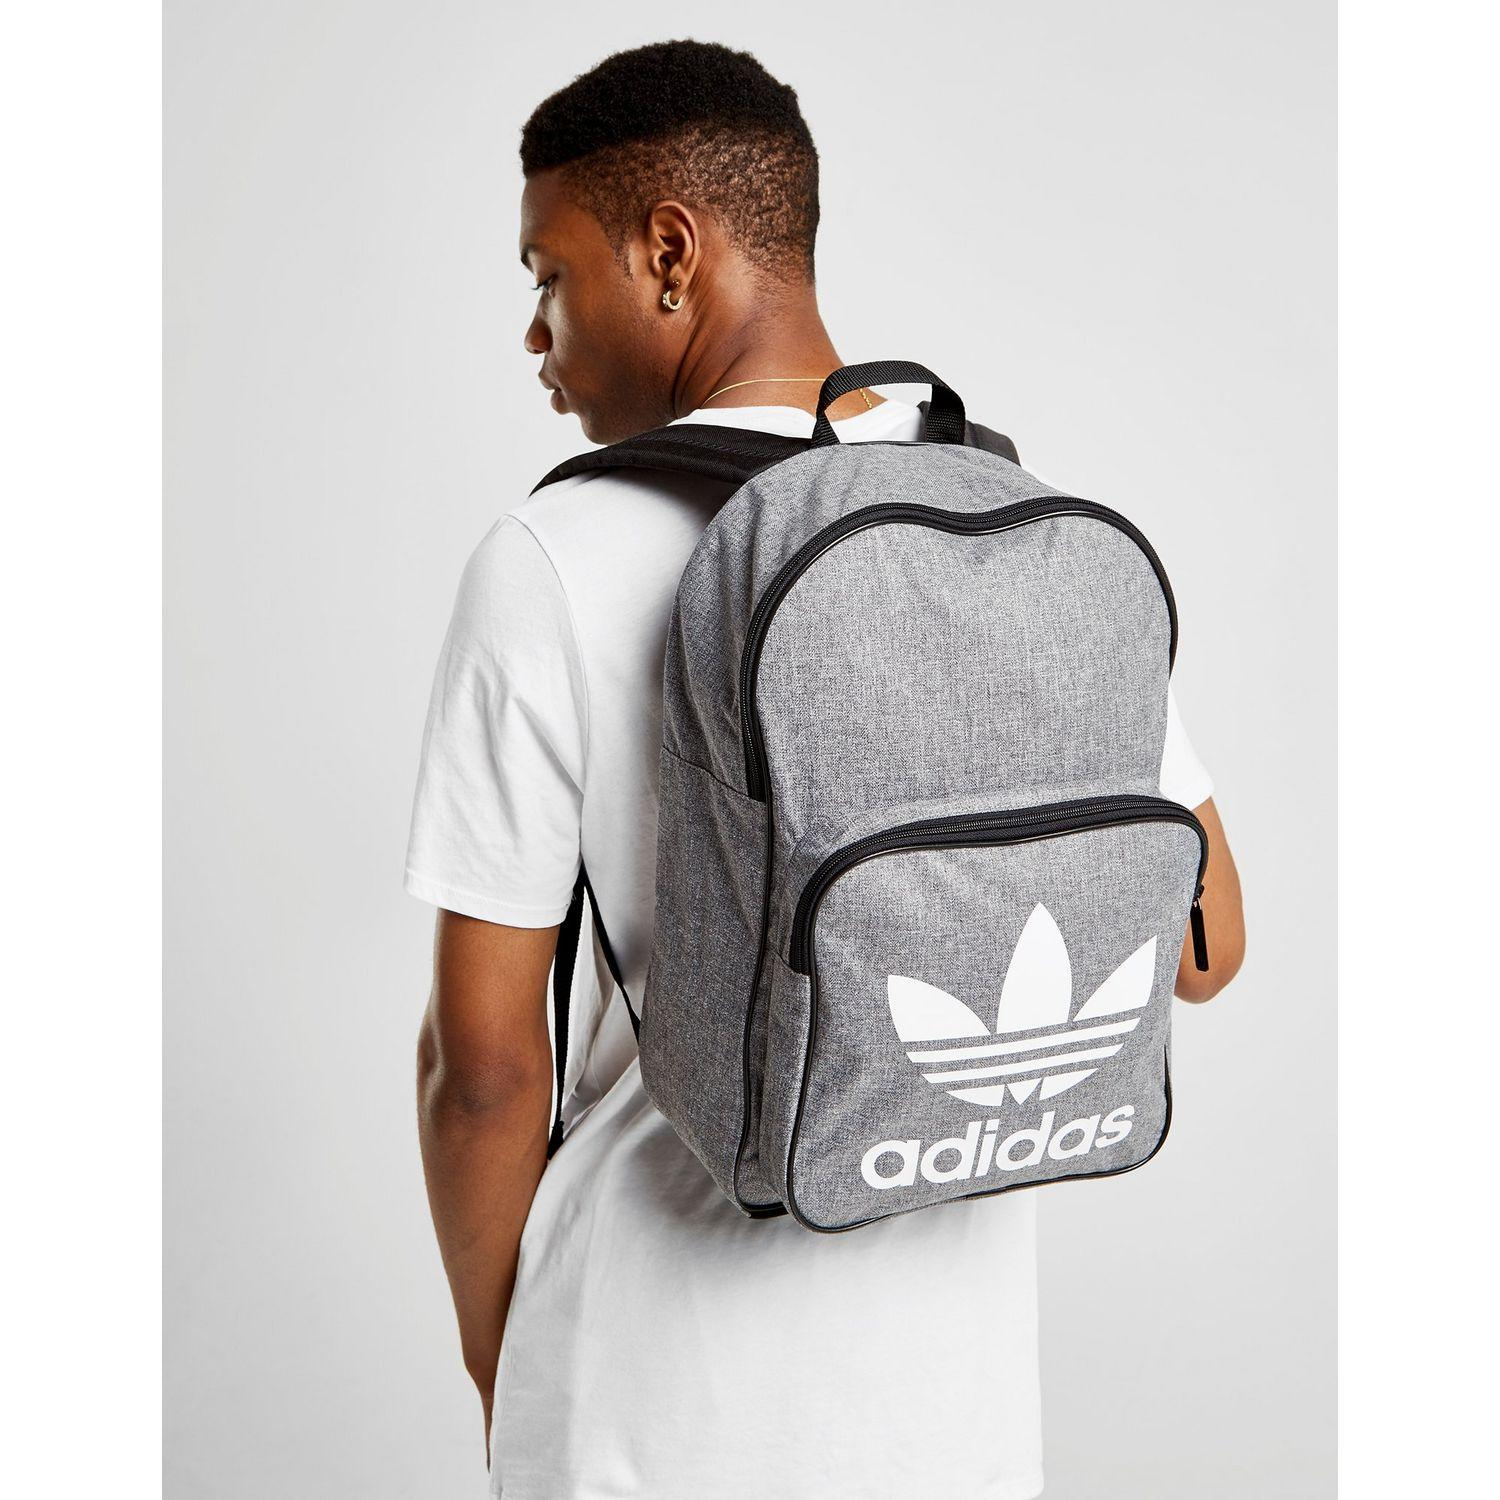 16614b31f0 Lyst - adidas Originals Classic Trefoil Backpack in Black for Men